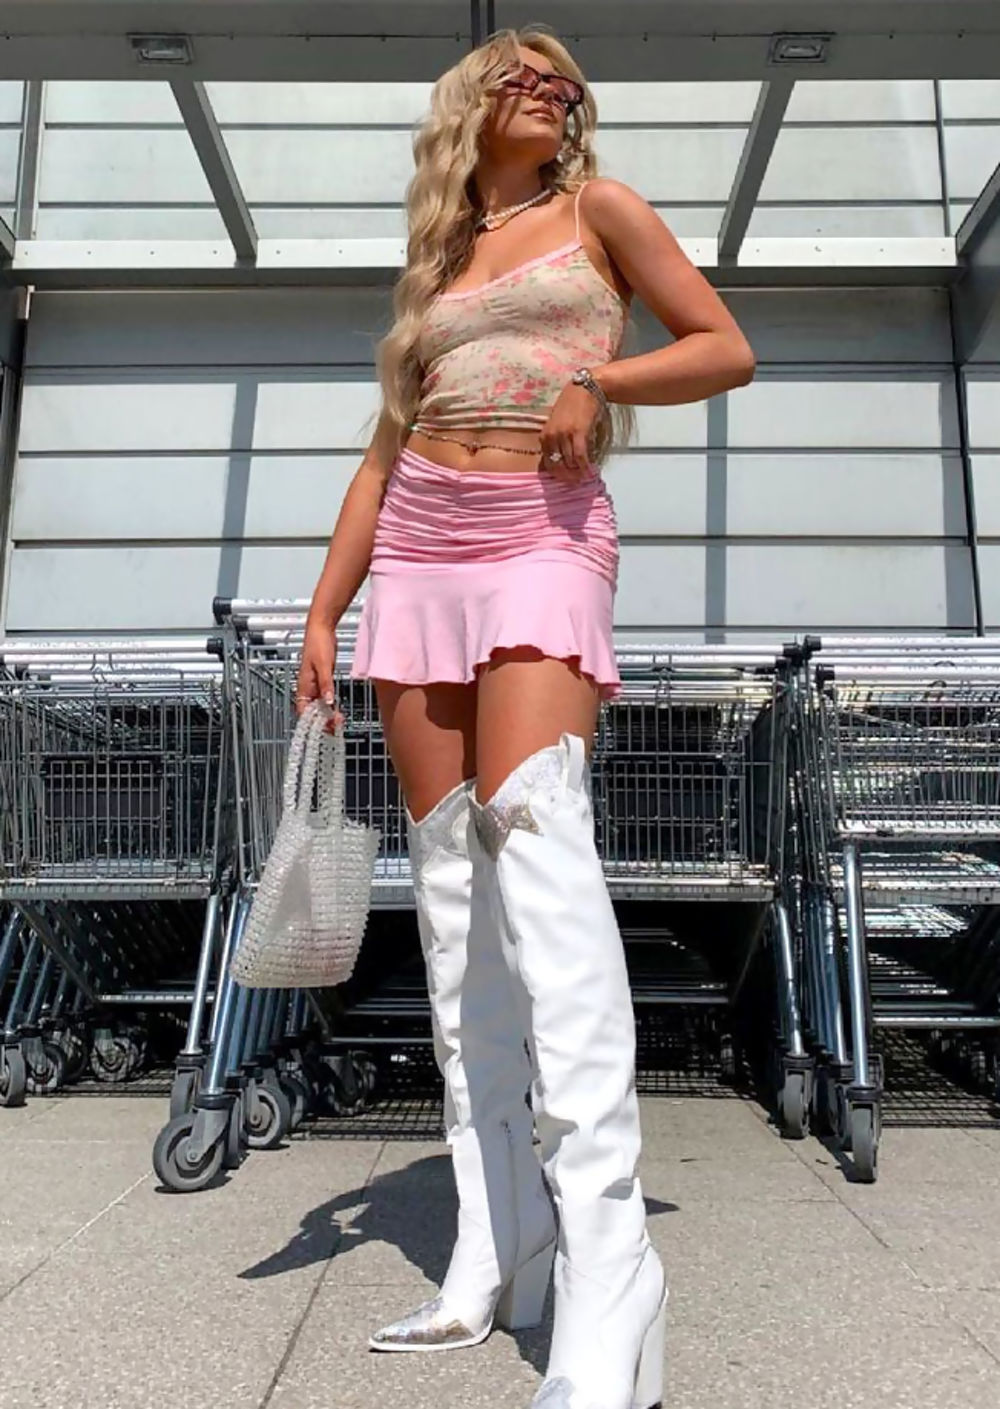 Floral crop top with pink mini skirt and thigh-high white boots for aesthetic outfits